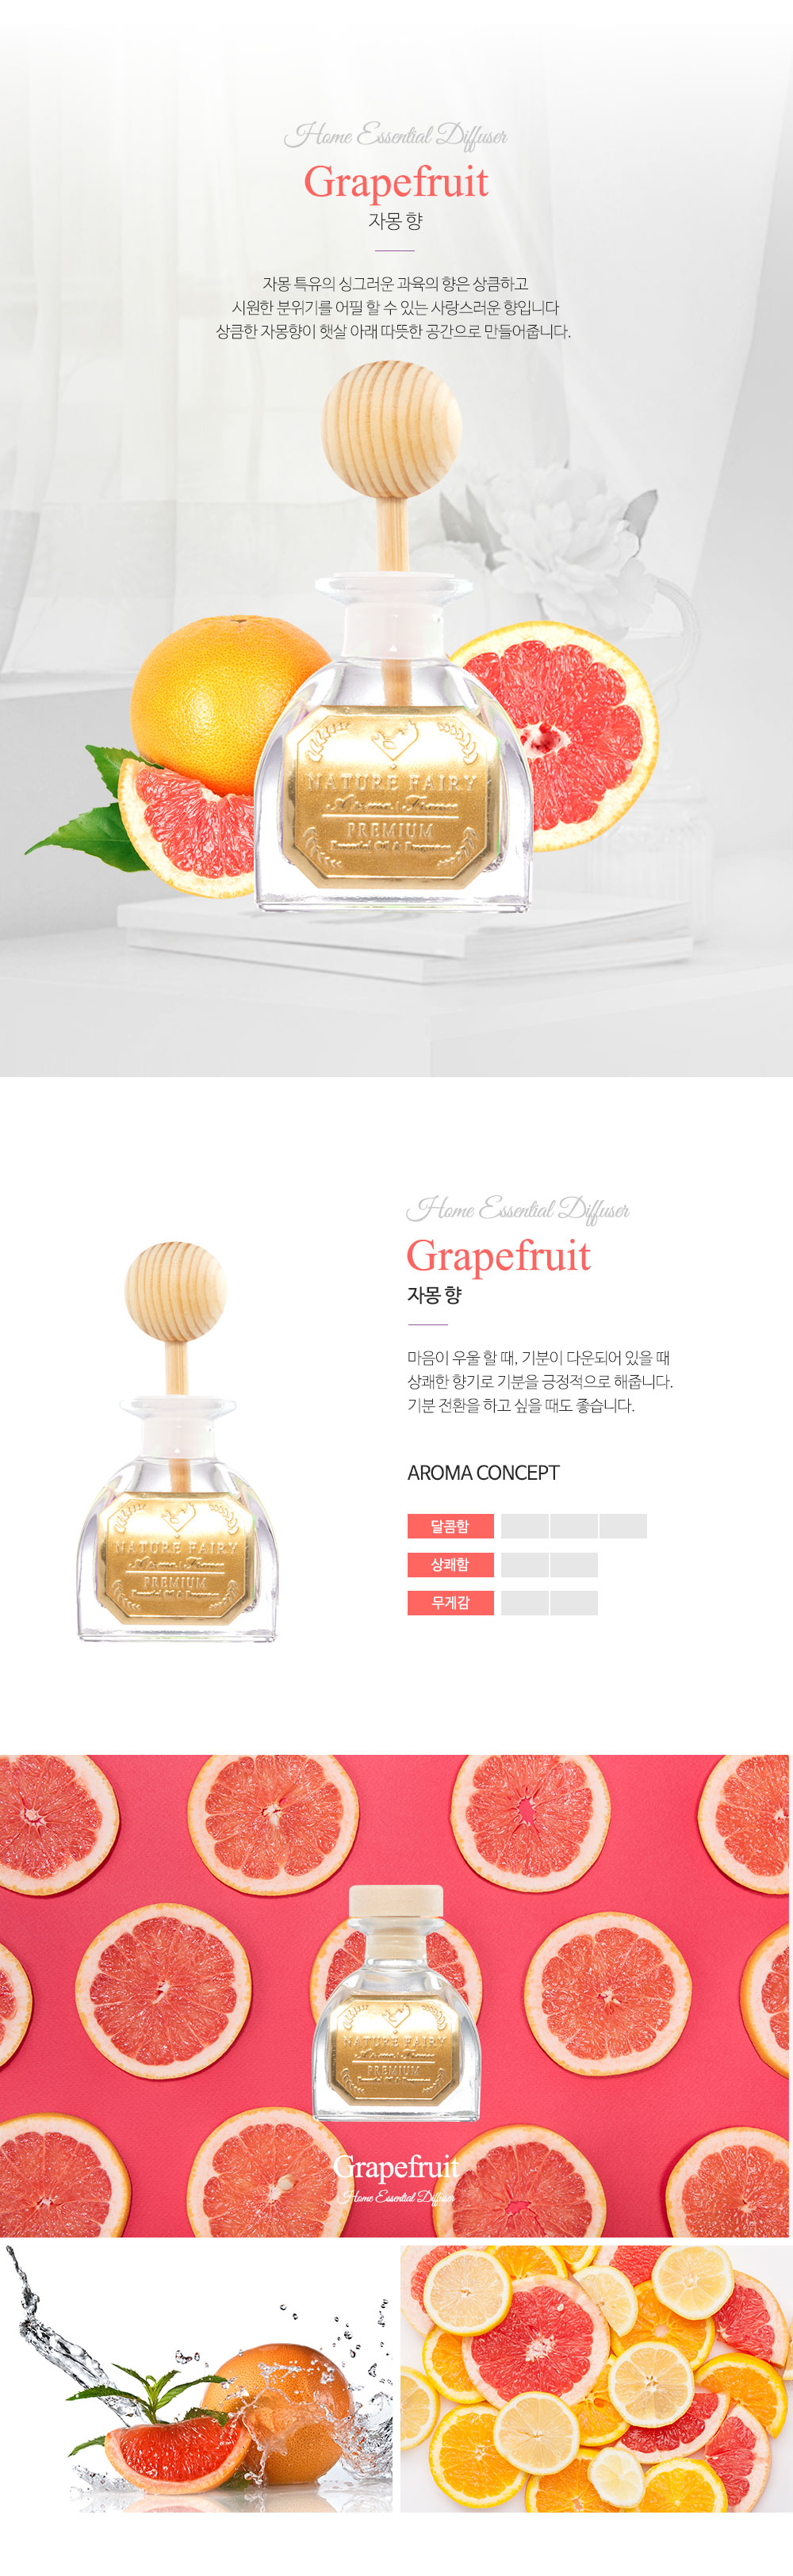 diffuser-premiumWoodball50ml_grapefruit_02.jpg